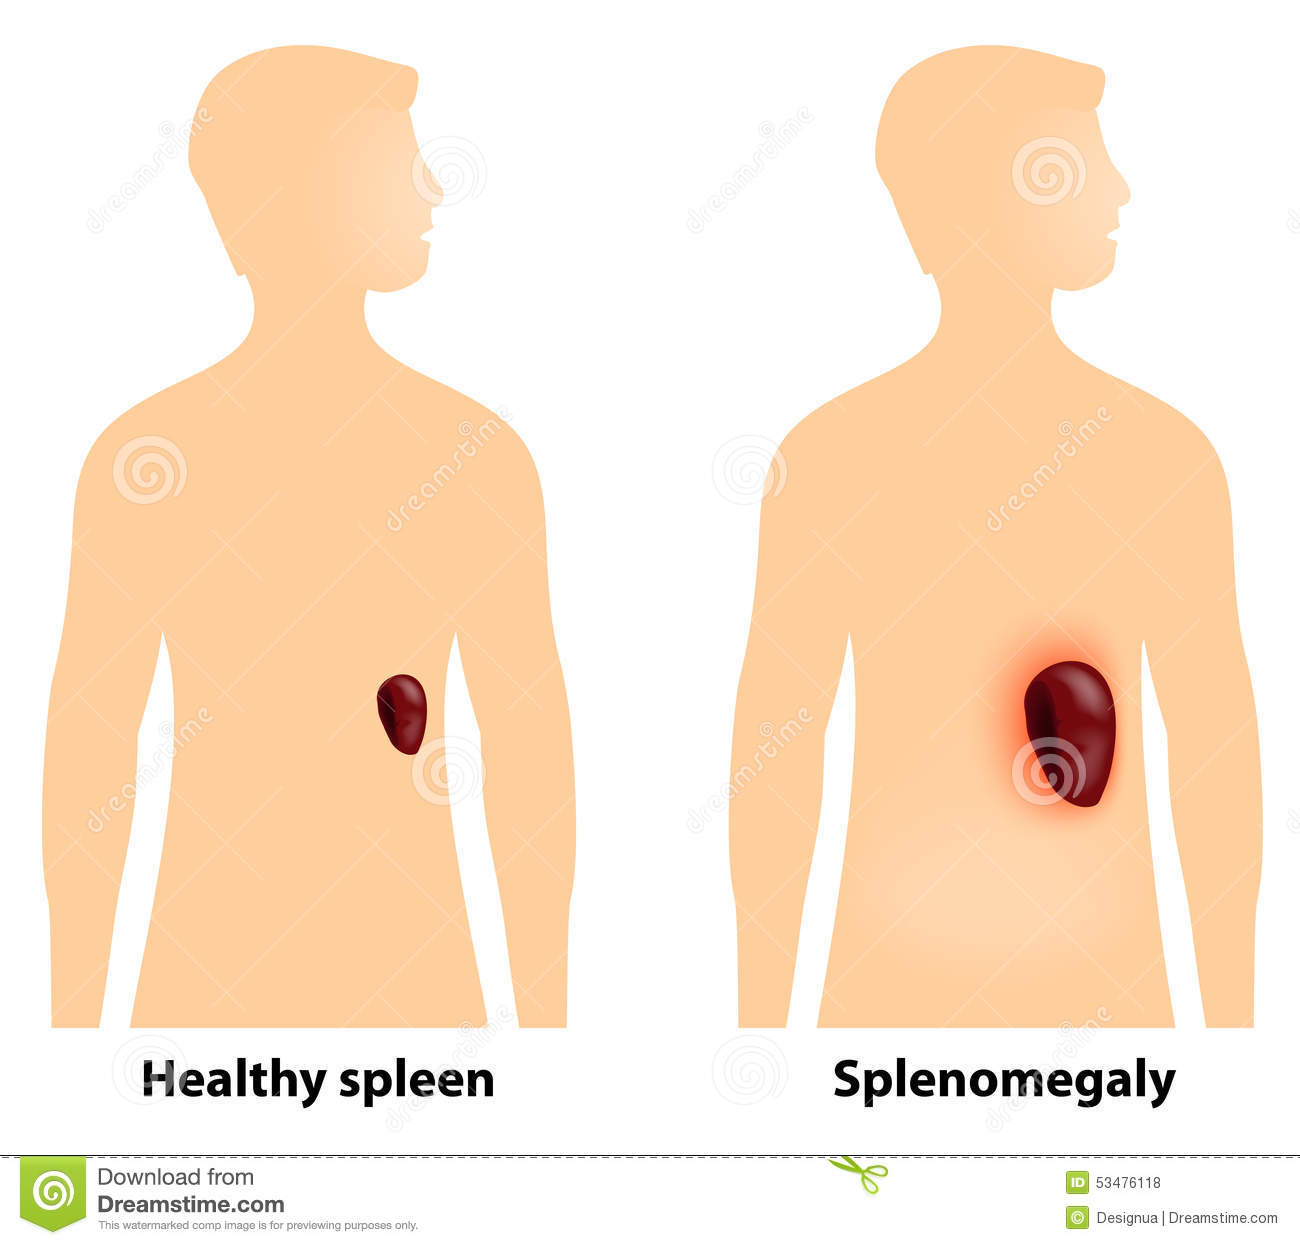 splenomegaly or enlarged spleen stock vector - image: 53476118, Skeleton